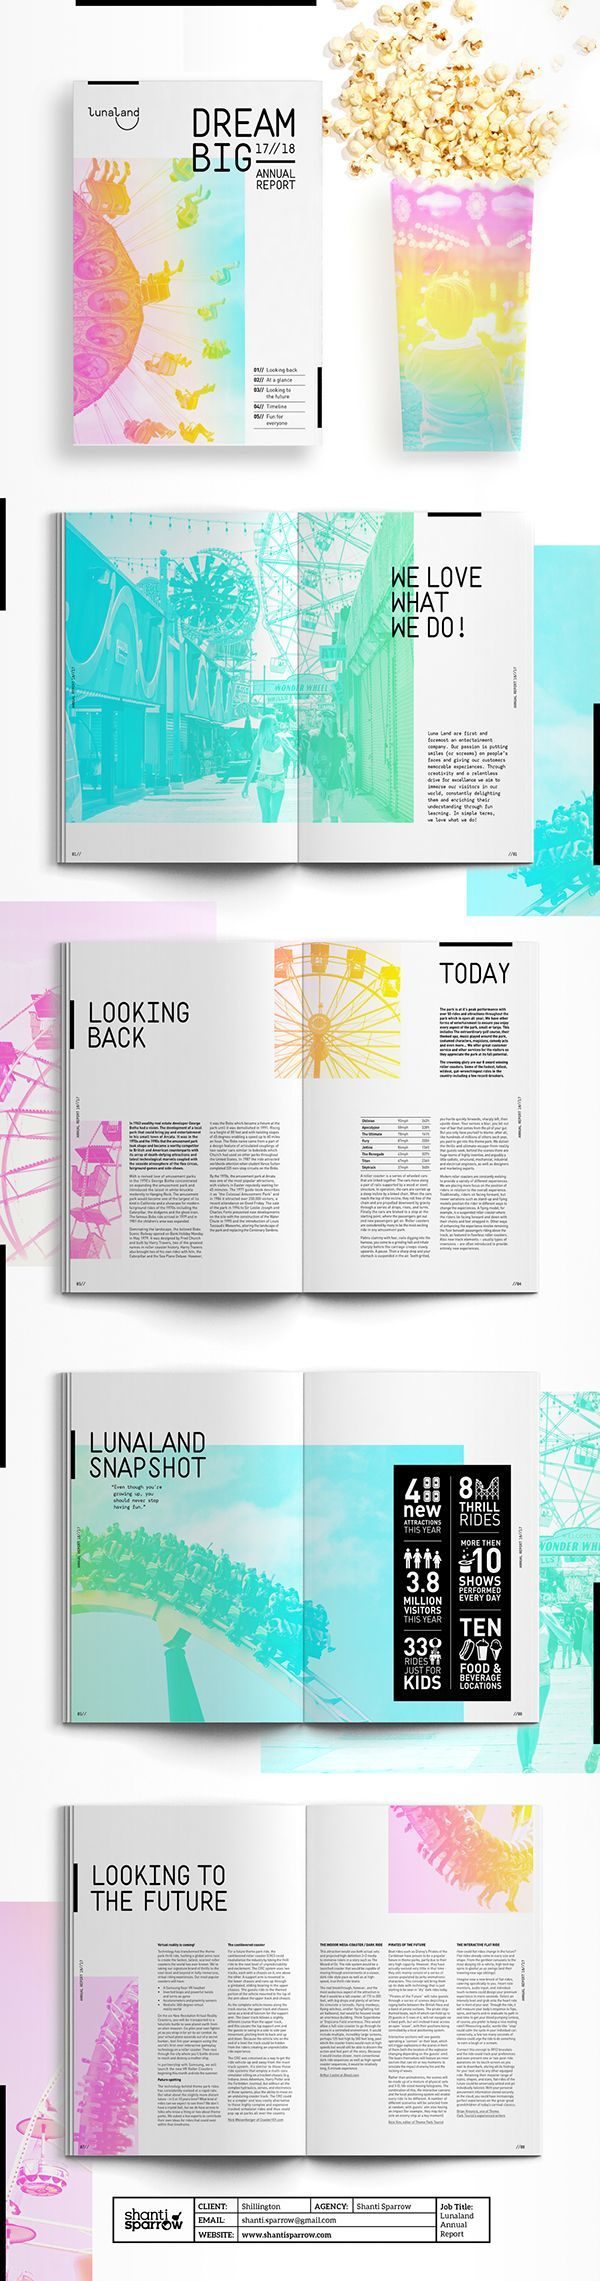 Get your book layout design within 24 hours. https://www.fiverr.com/ibookstar/design-attractive-book-layout